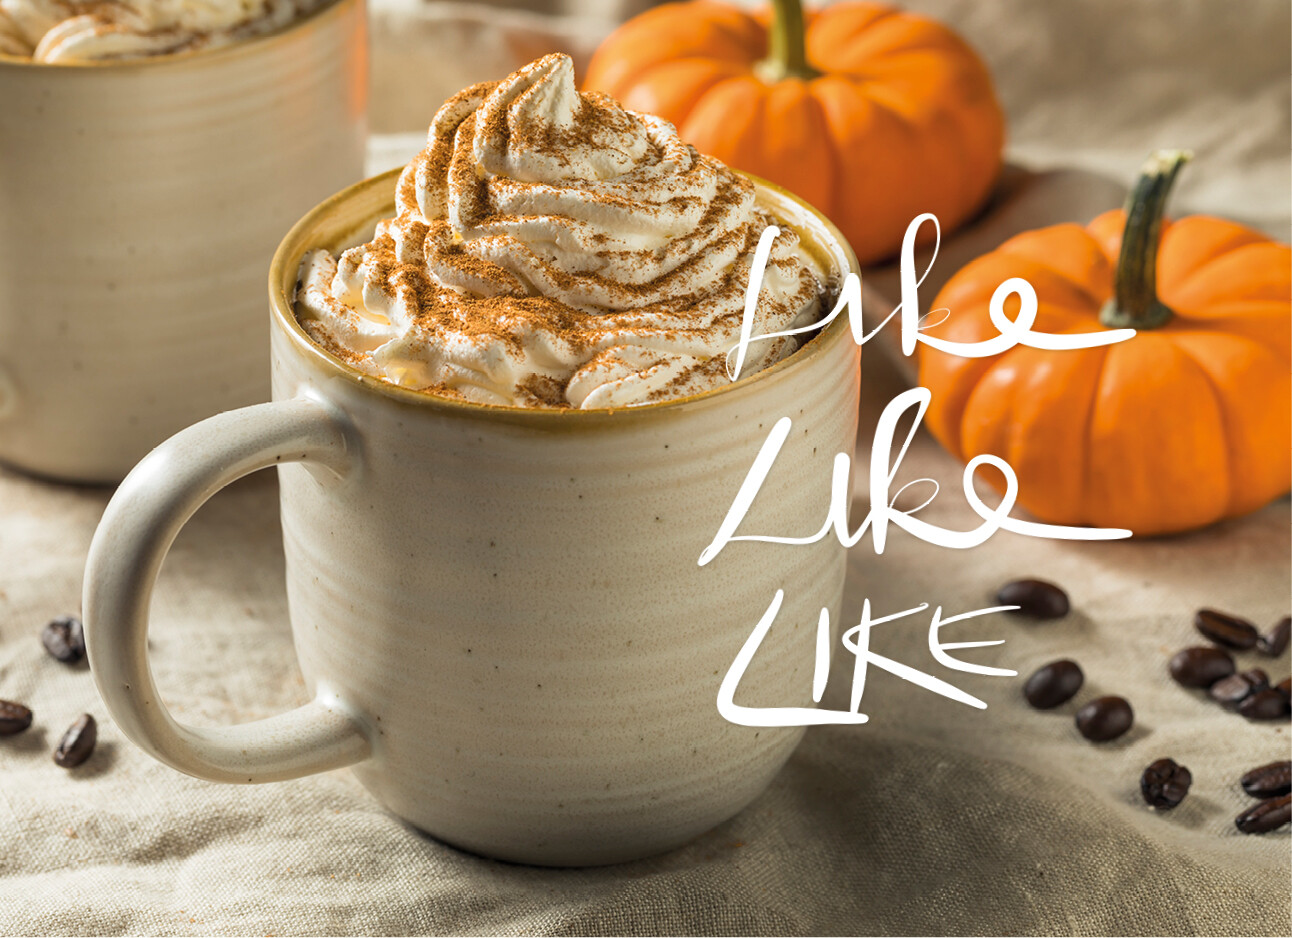 Oh yes: de pumpkin spice latte is terug